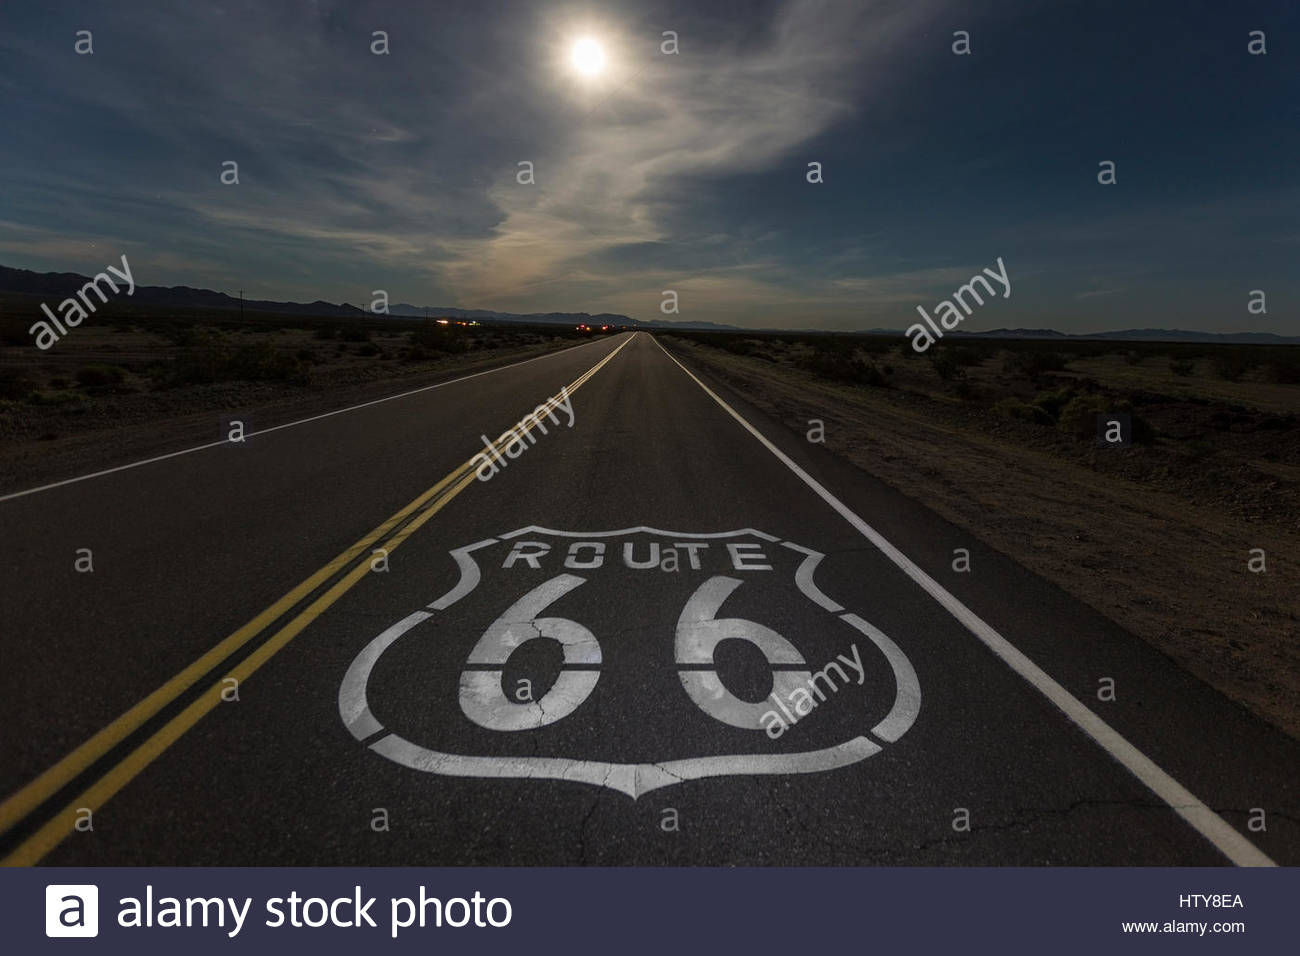 Full moon over Route 66 in the California Mojave desert. - Stock Image